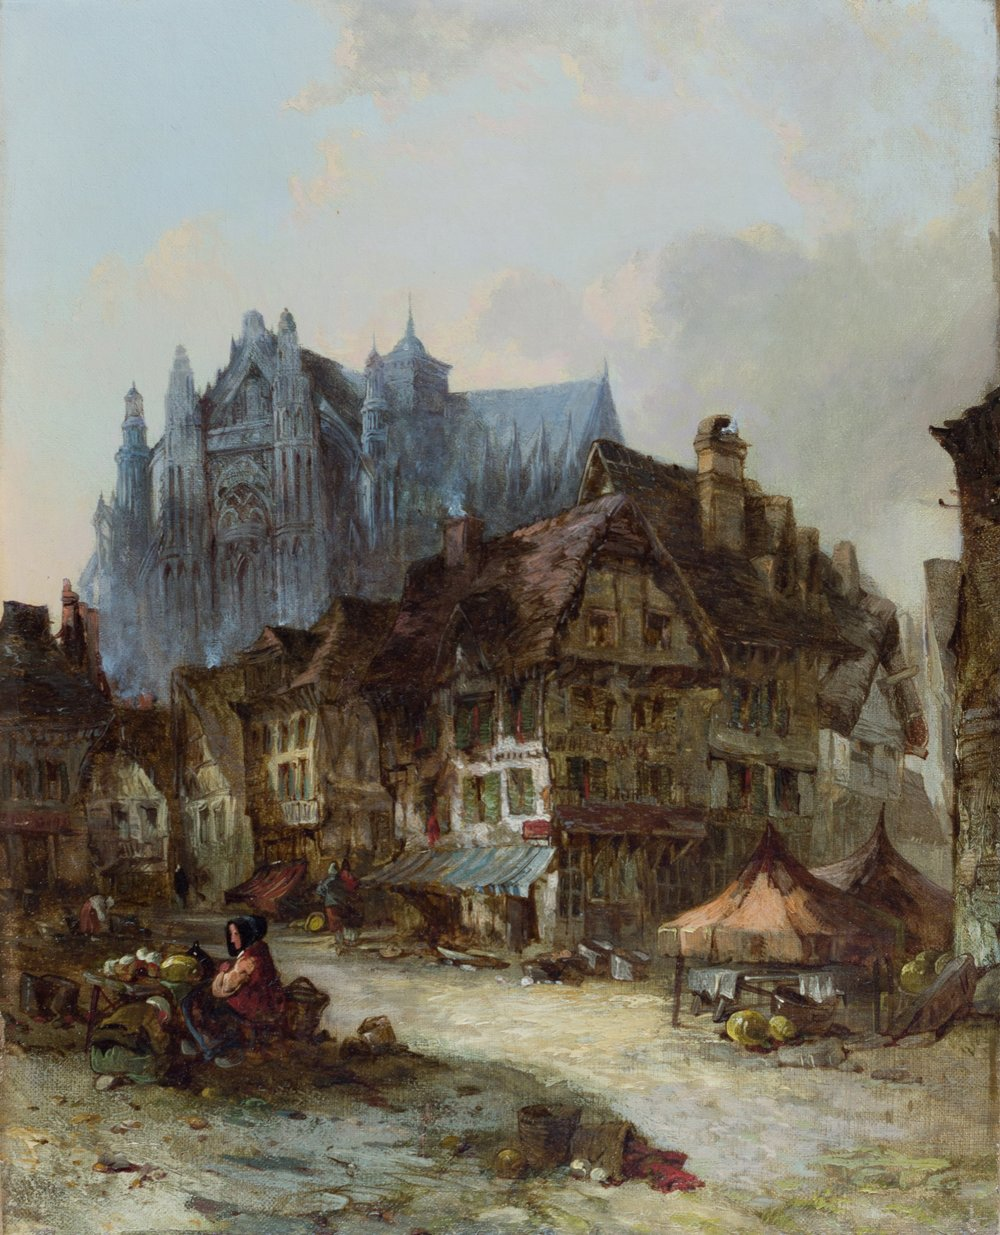 HR_CAMBRIDGE_FINE_ART_Alfred_Montague_A_Dutch_Street.JPG